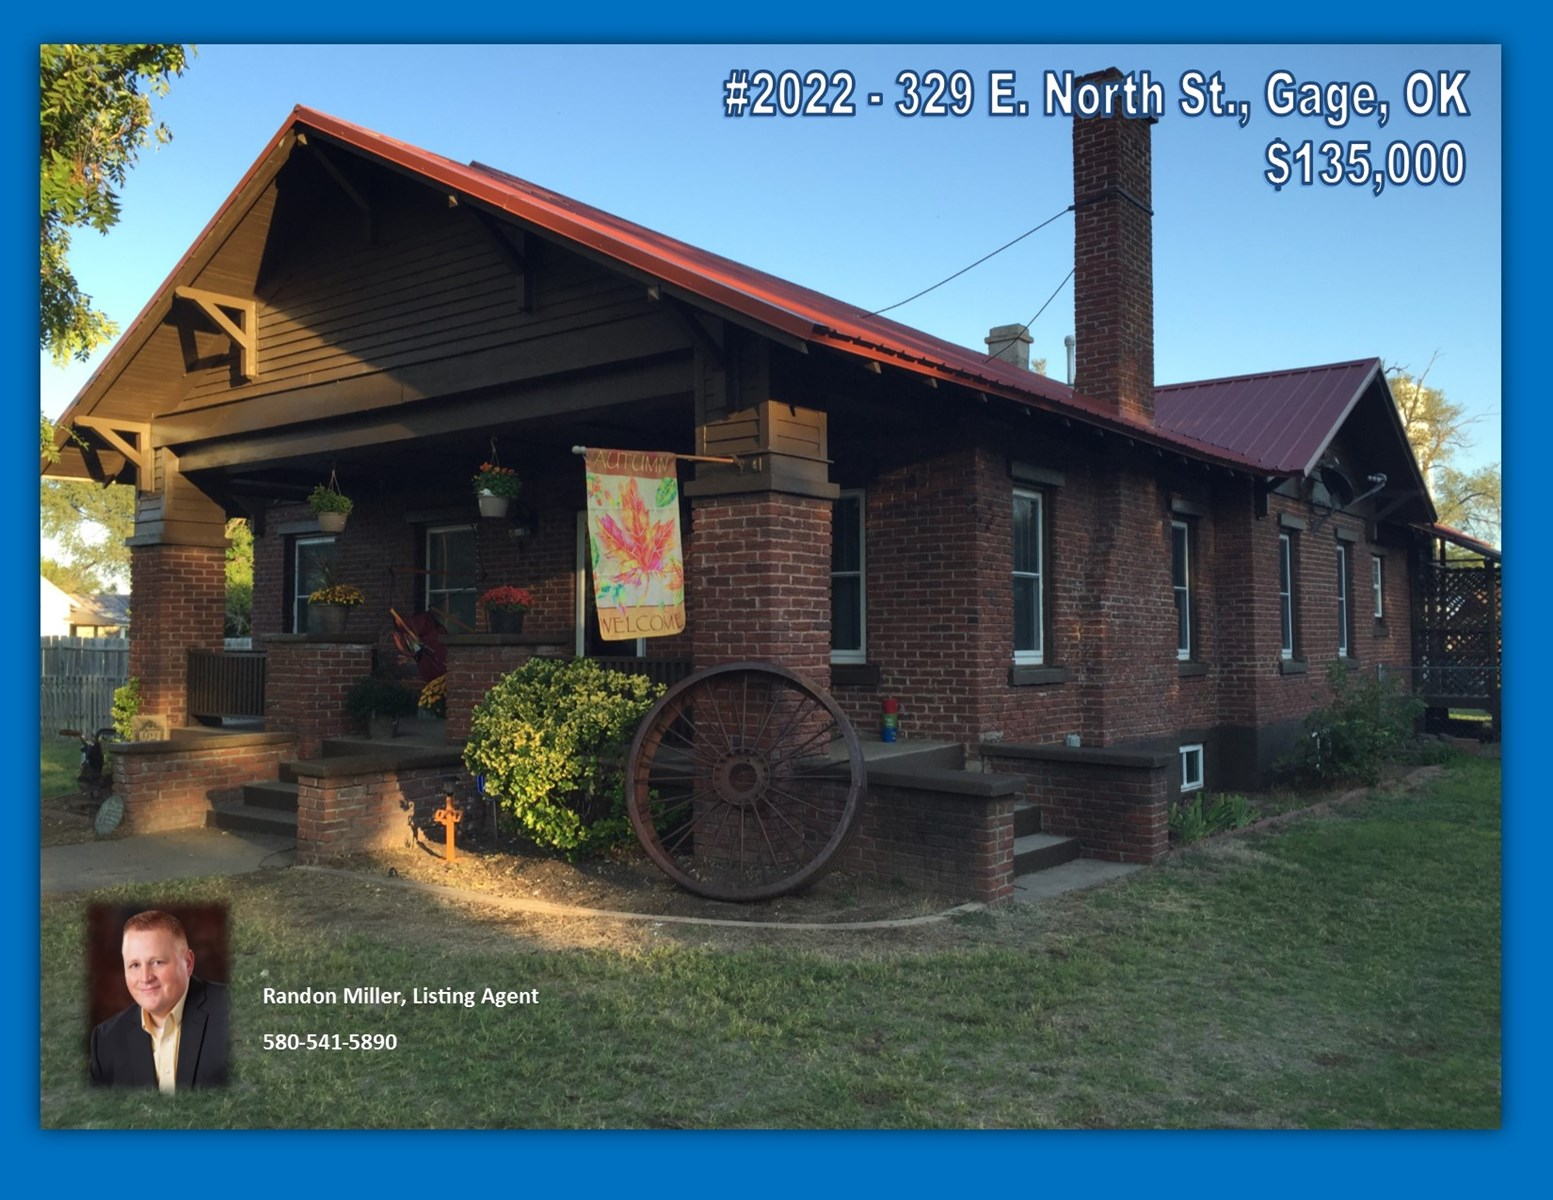 Home for Sale Gage, OK  (Ellis County)